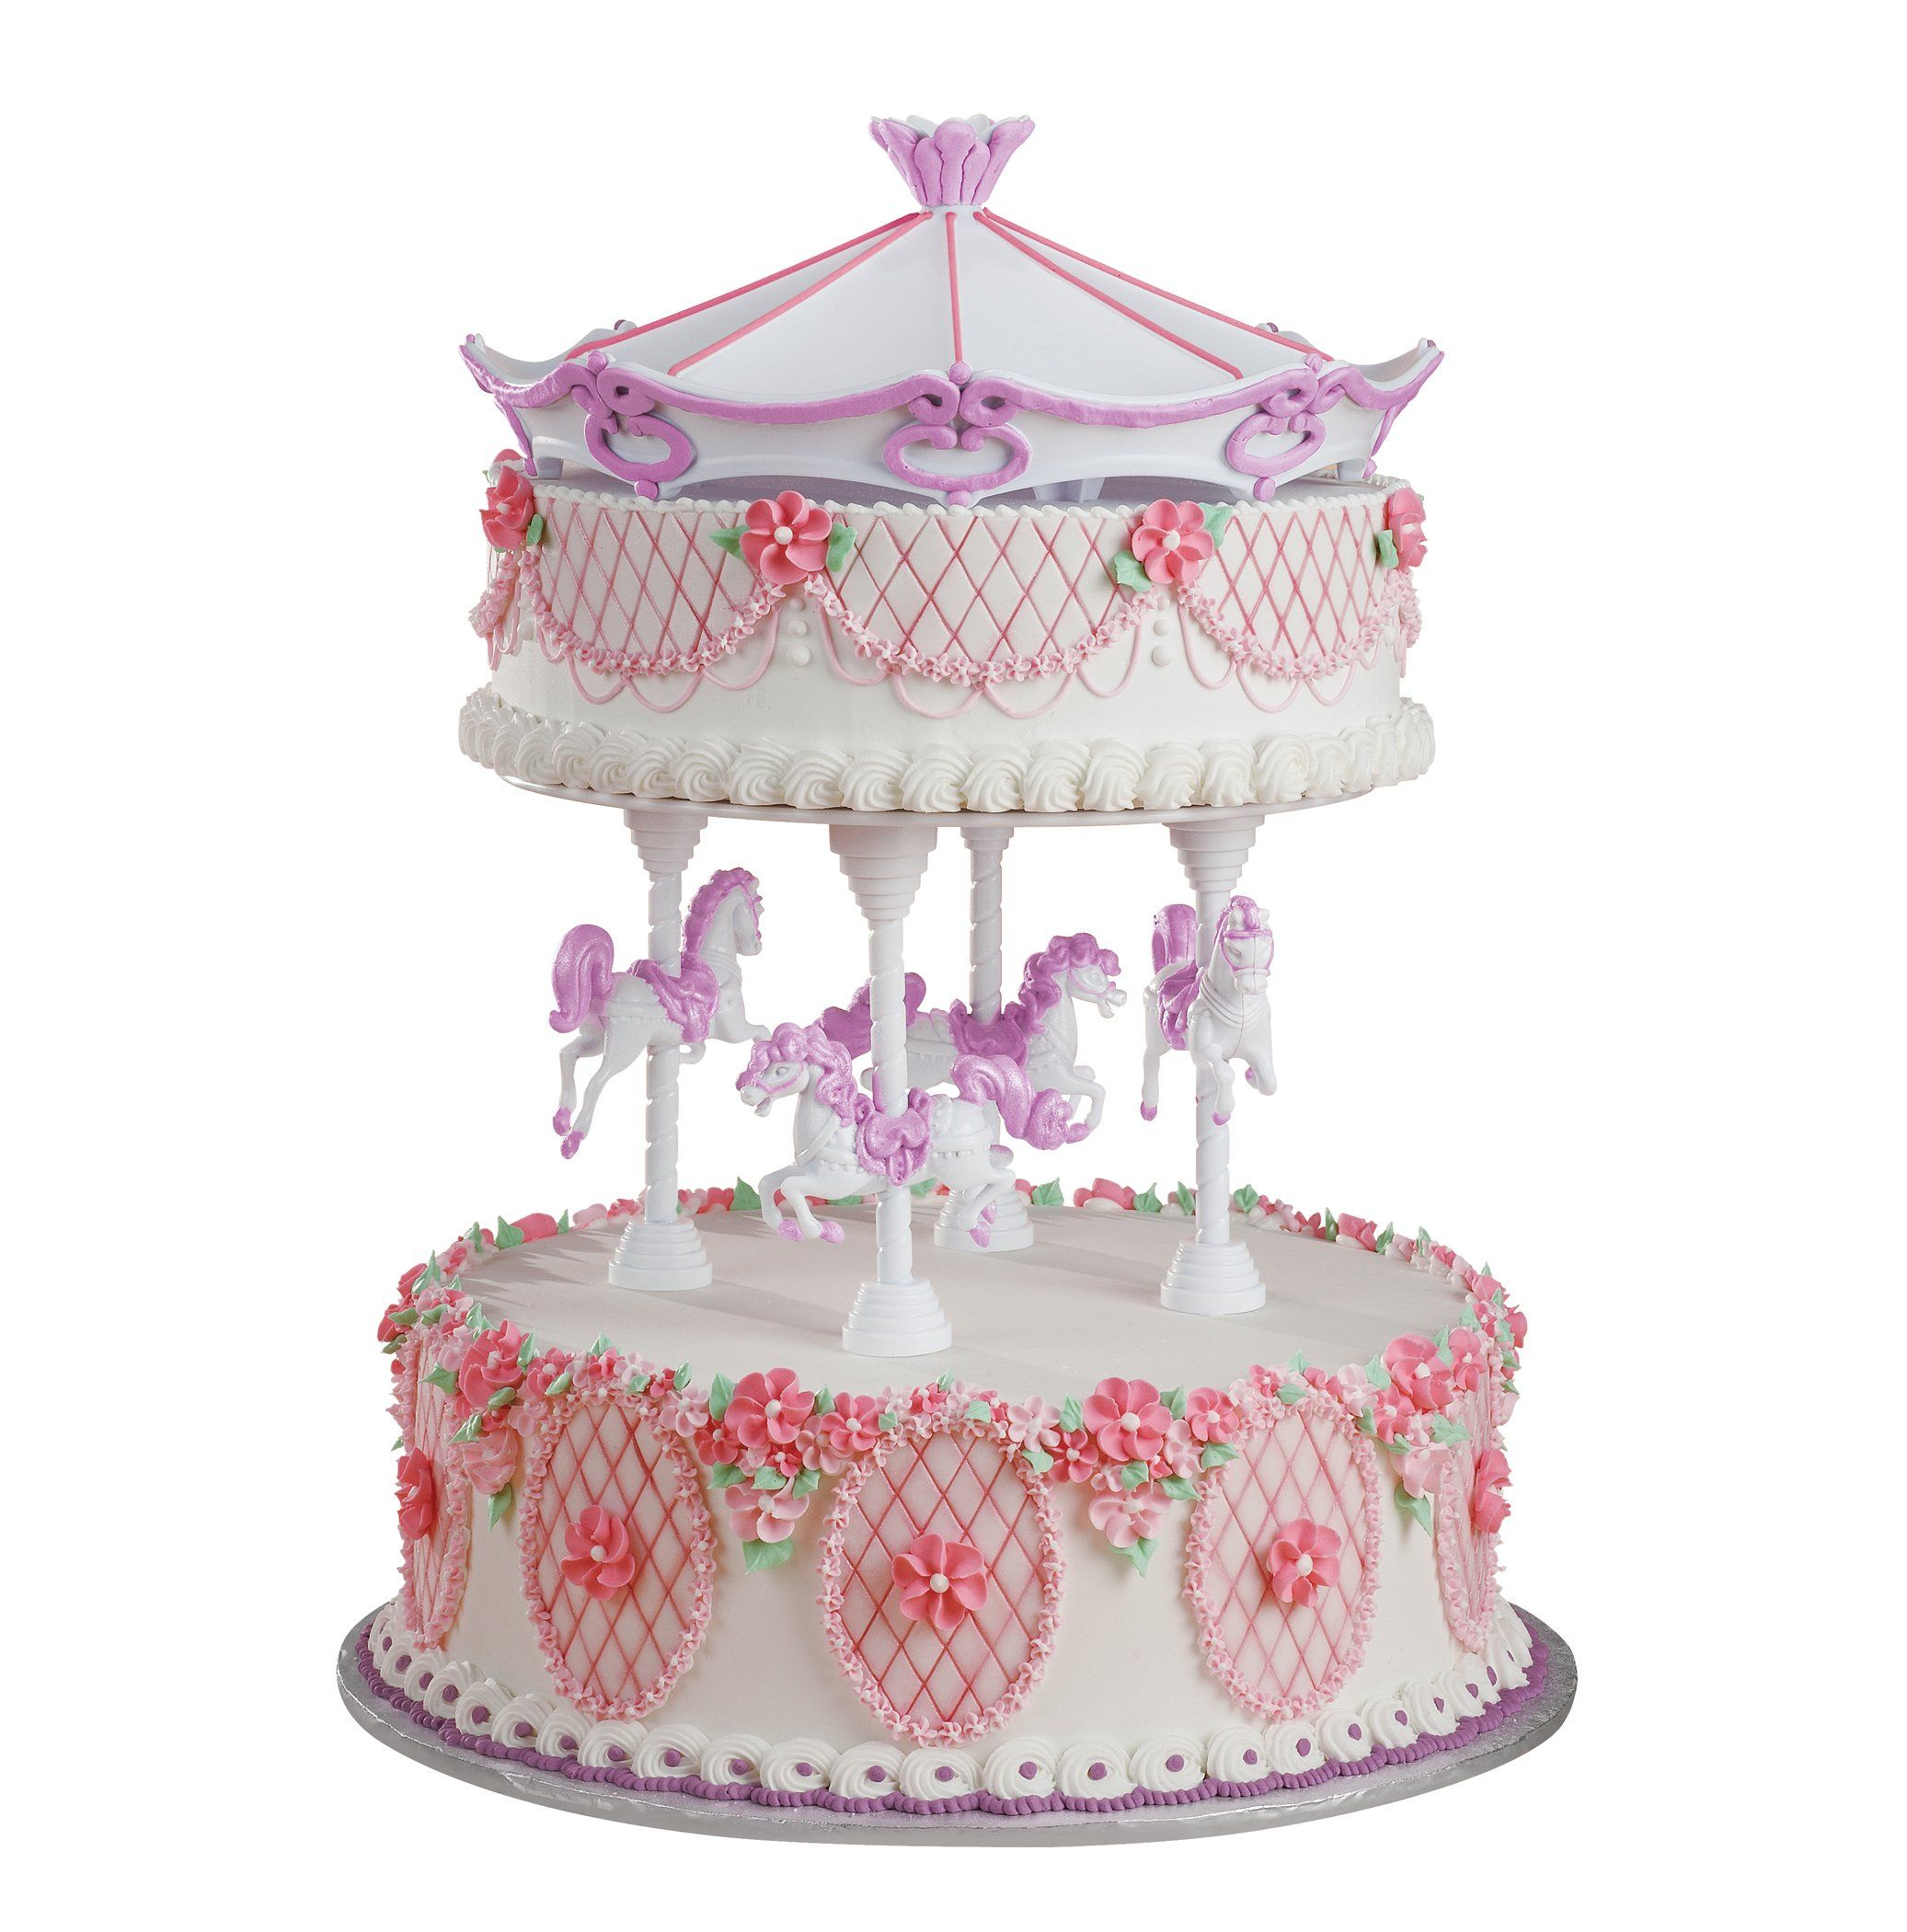 Amazon.com: Wilton Carousel Cake Set: Food Decorating Tools: Kitchen ...